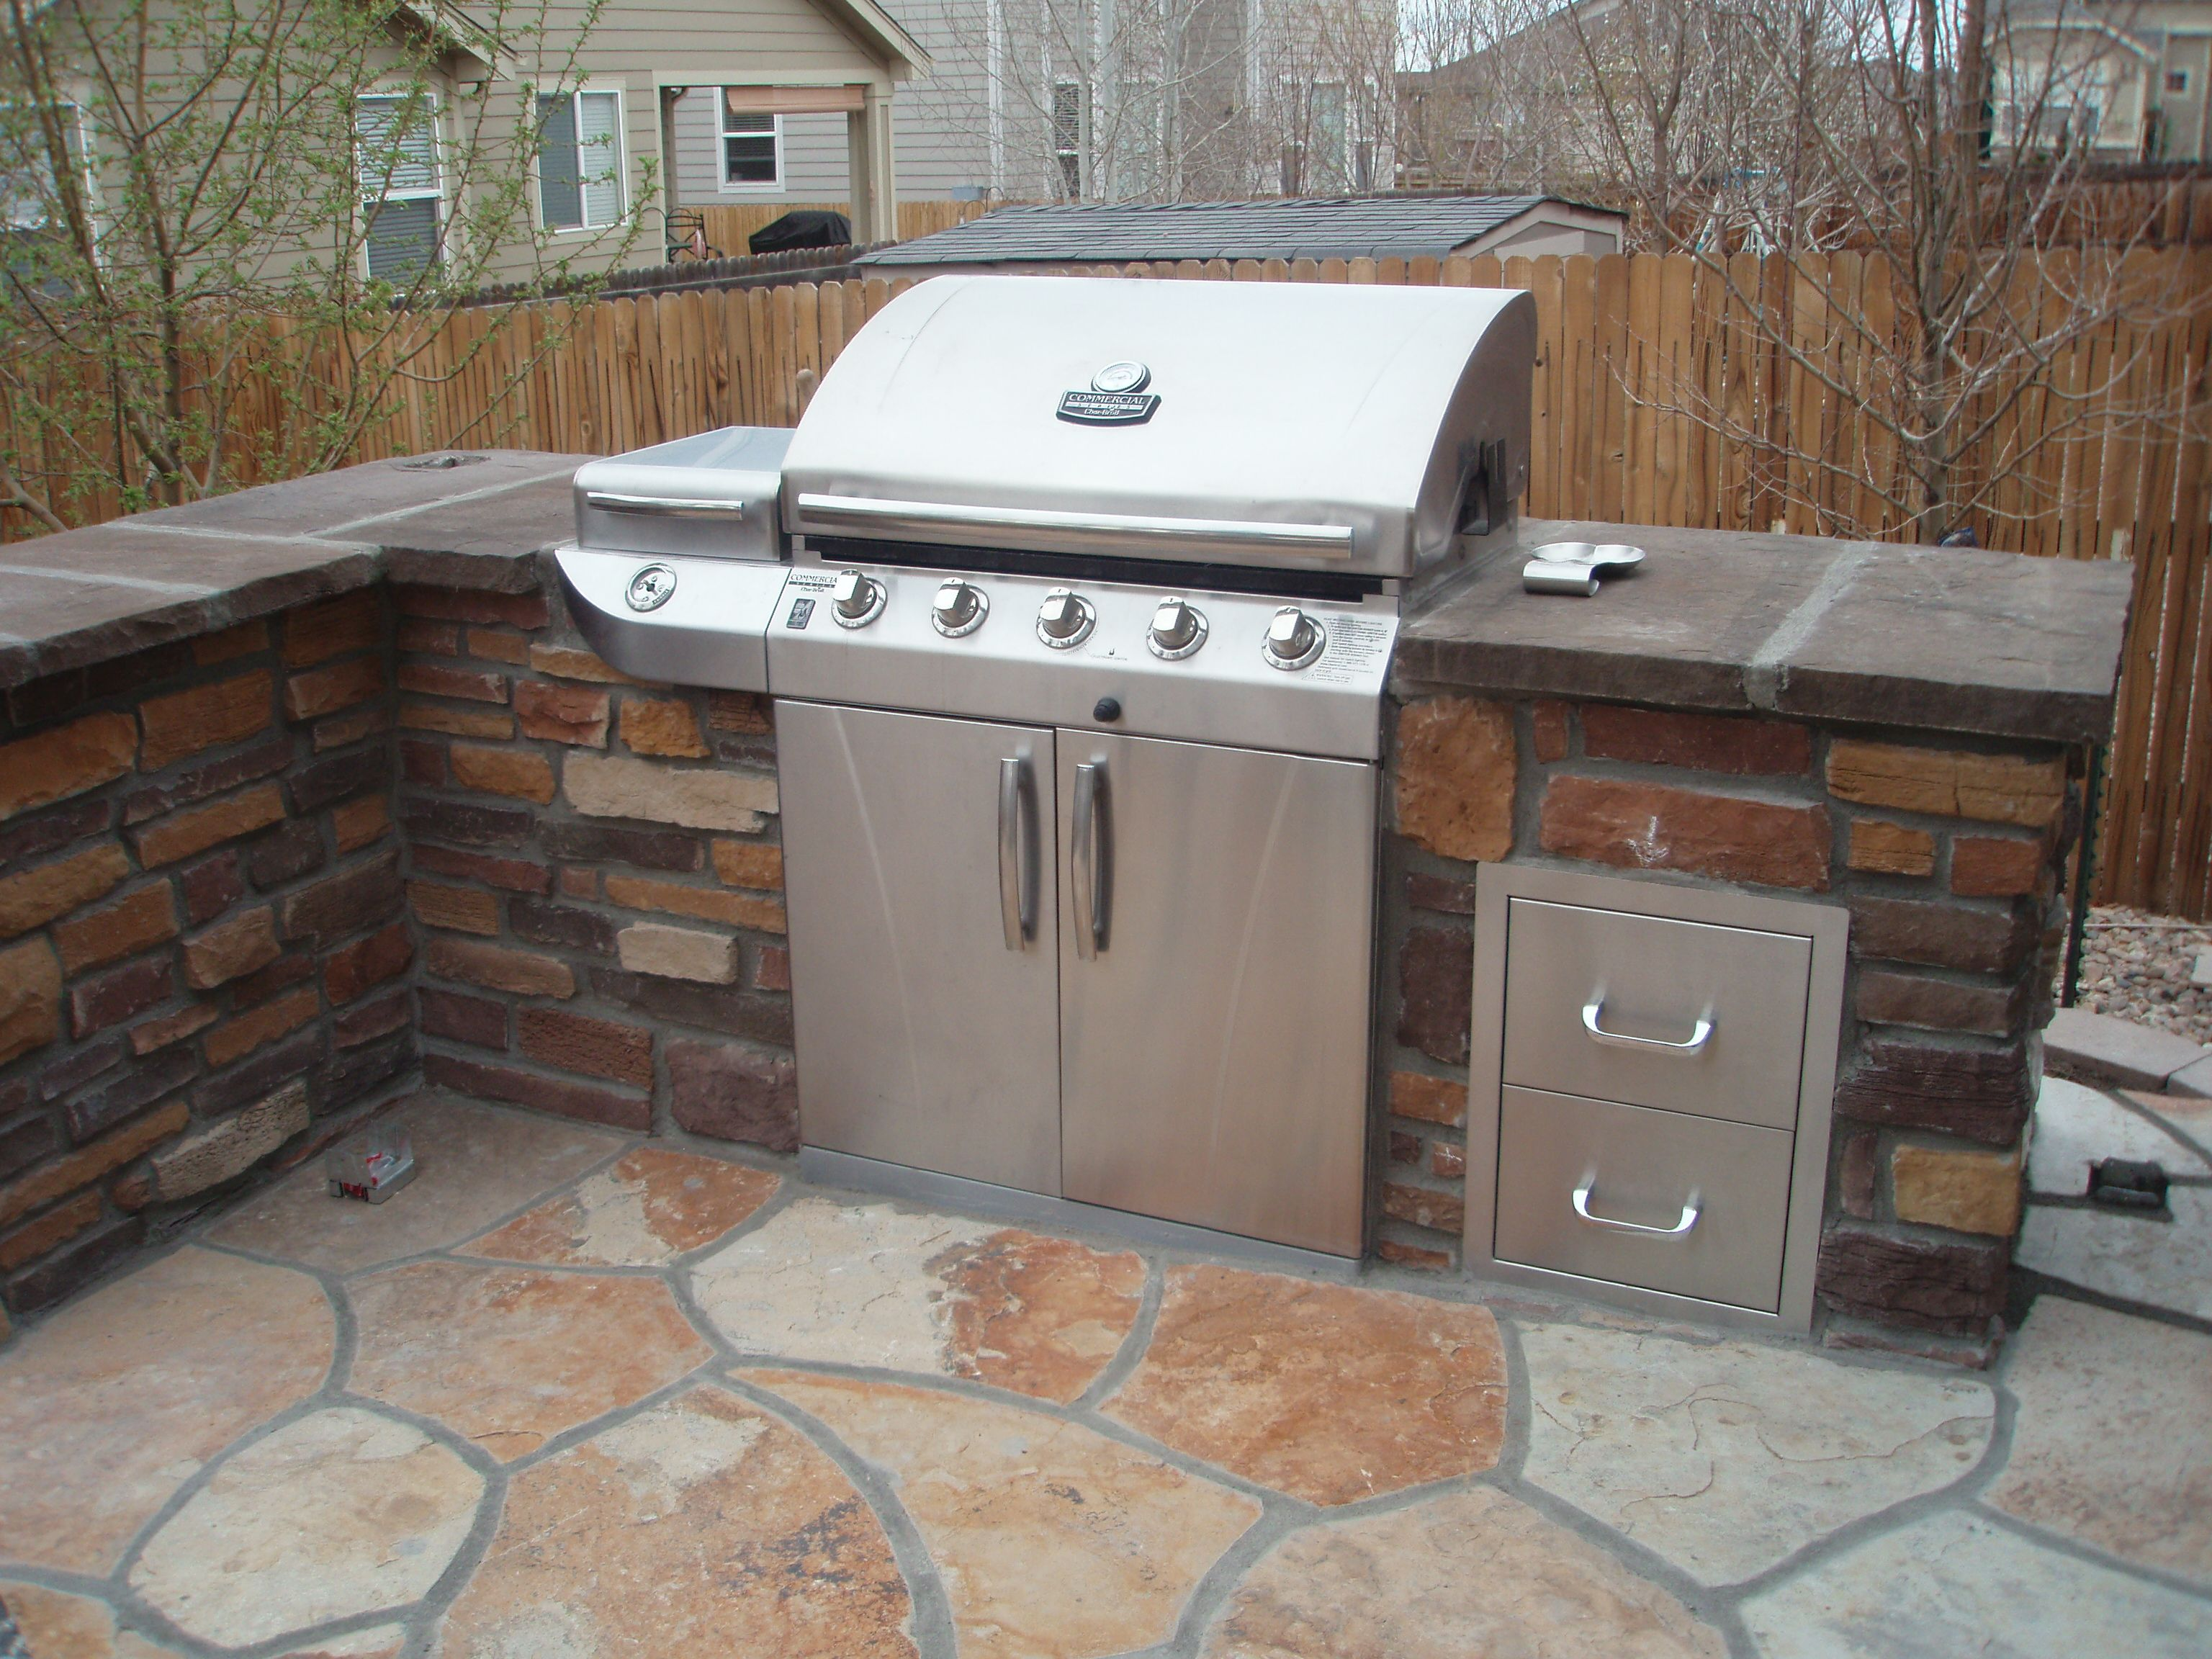 Pin By Kevin Skeens On Bars And Grills Outdoor Kitchen Outdoor Kitchen Bars Outdoor Patio Ideas Backyards